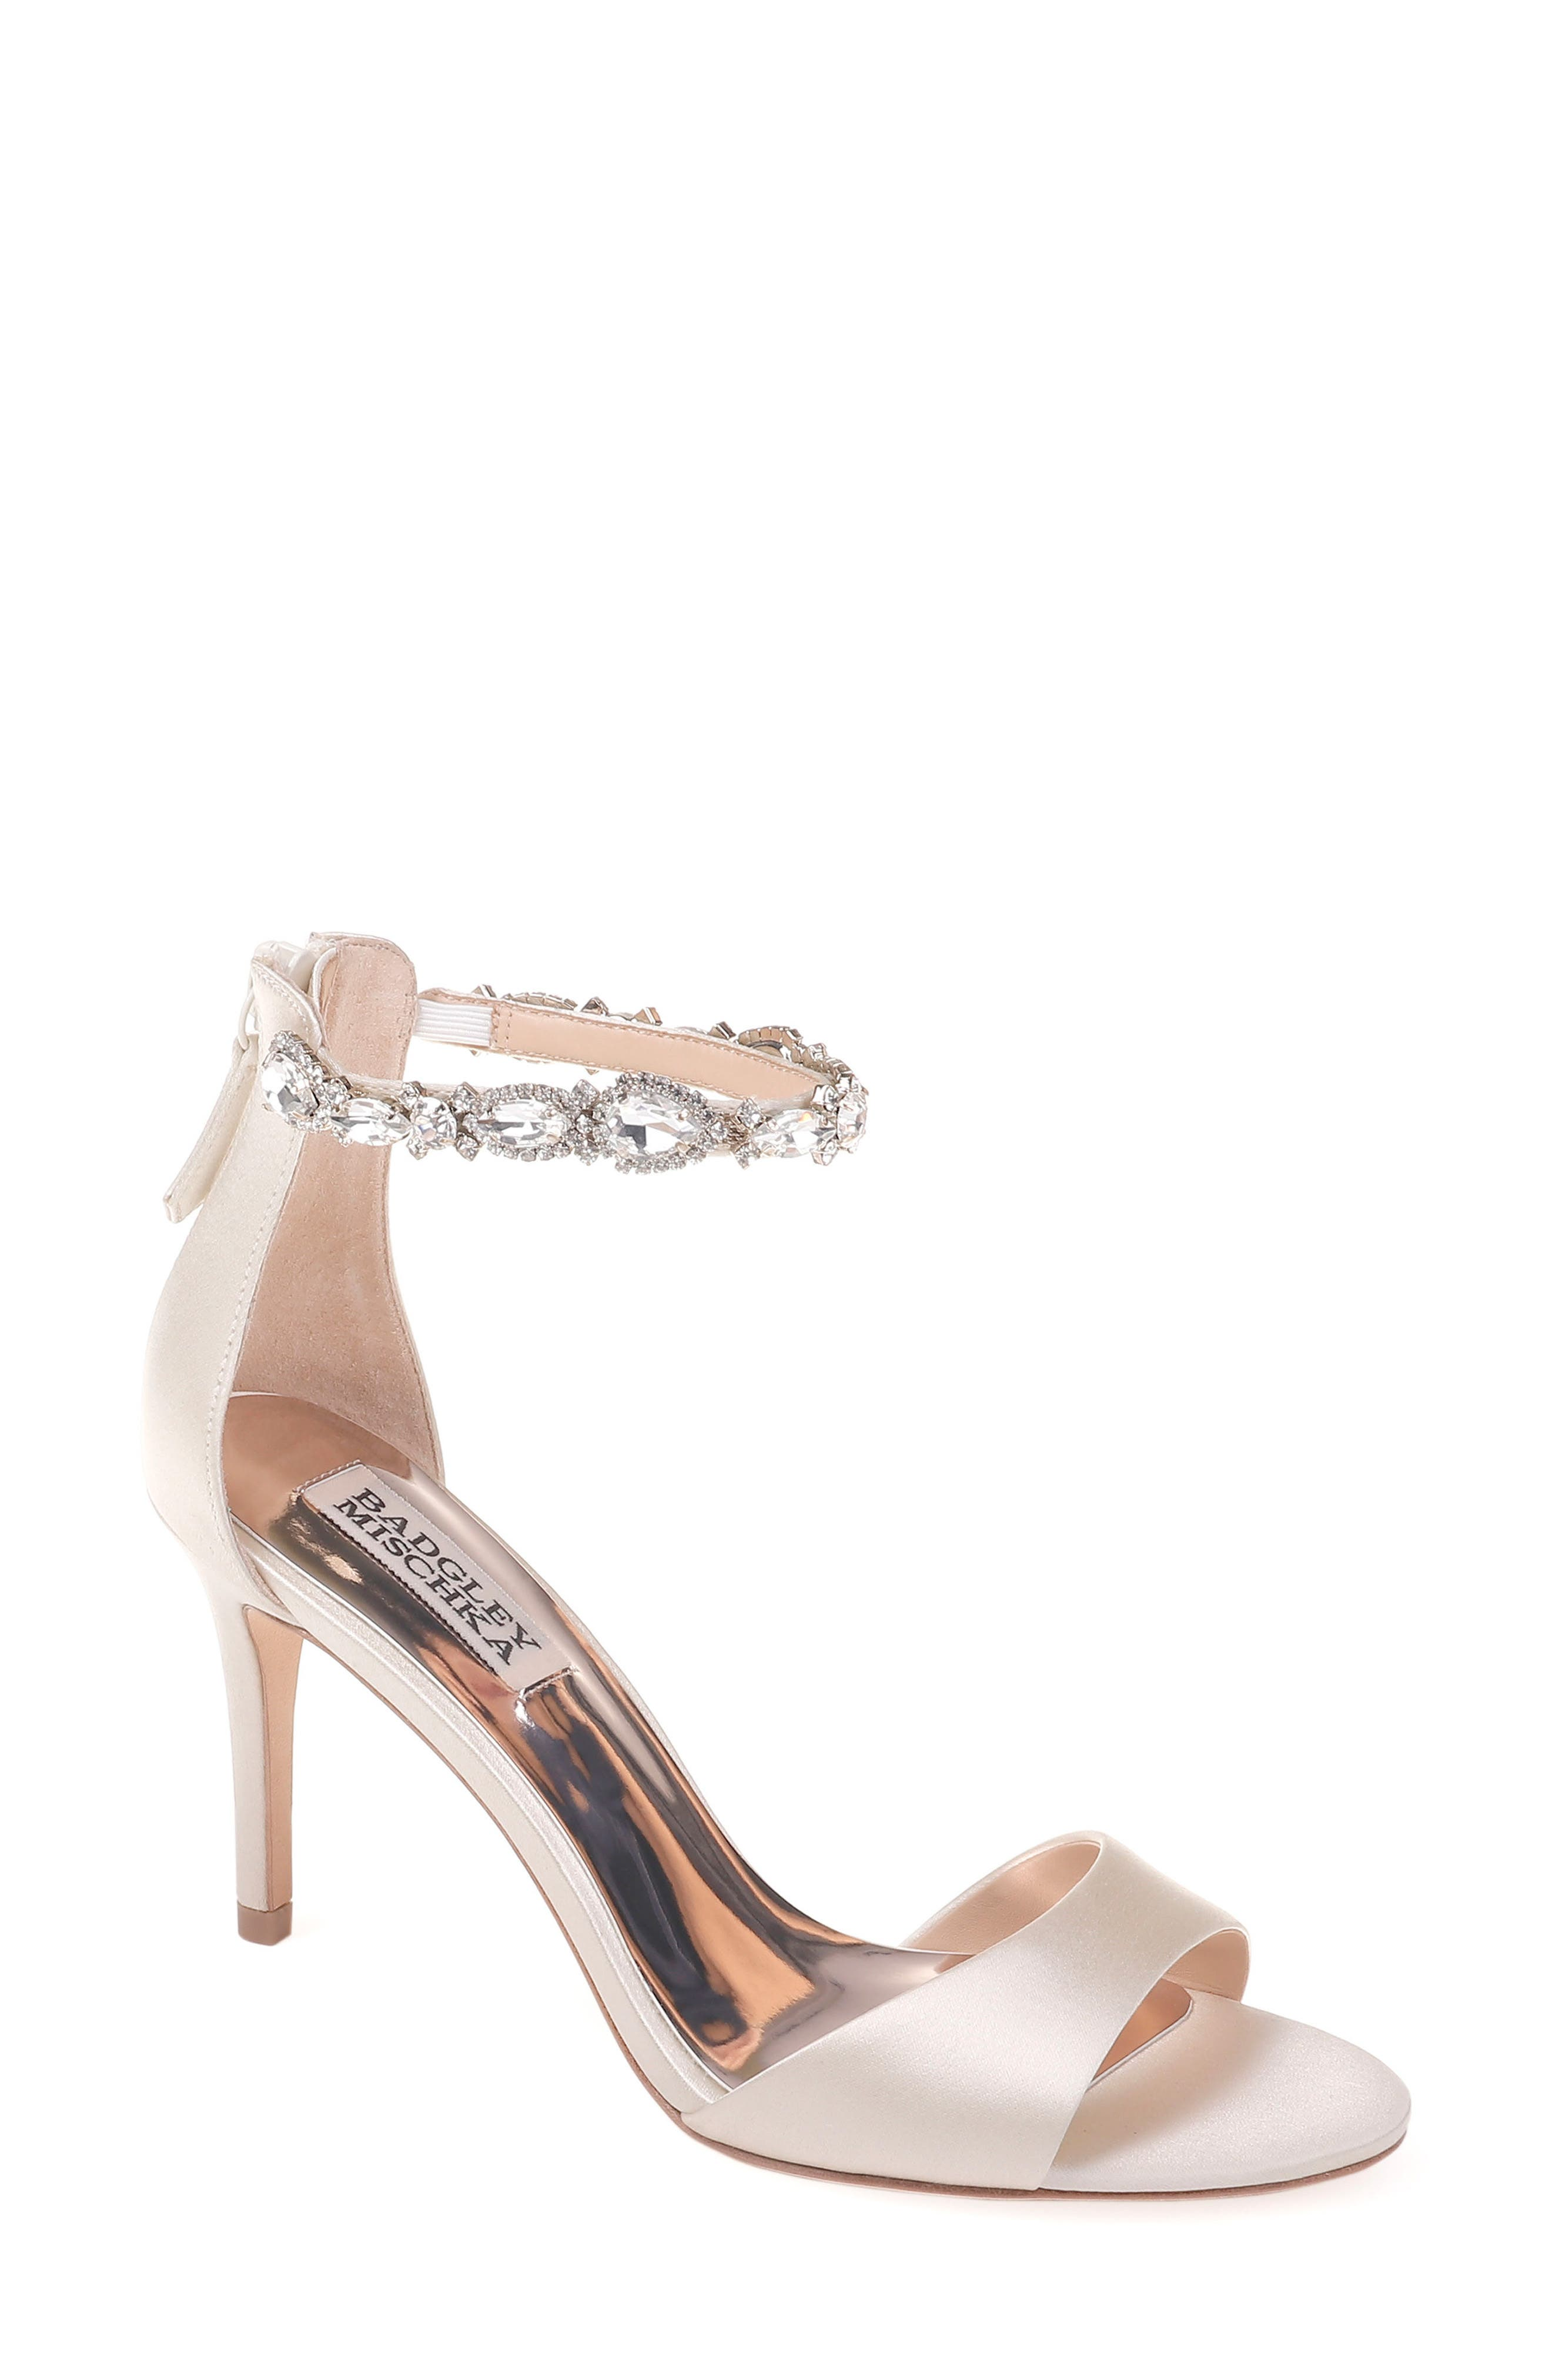 Sindy Ankle Strap Sandal,                             Main thumbnail 1, color,                             IVORY SATIN